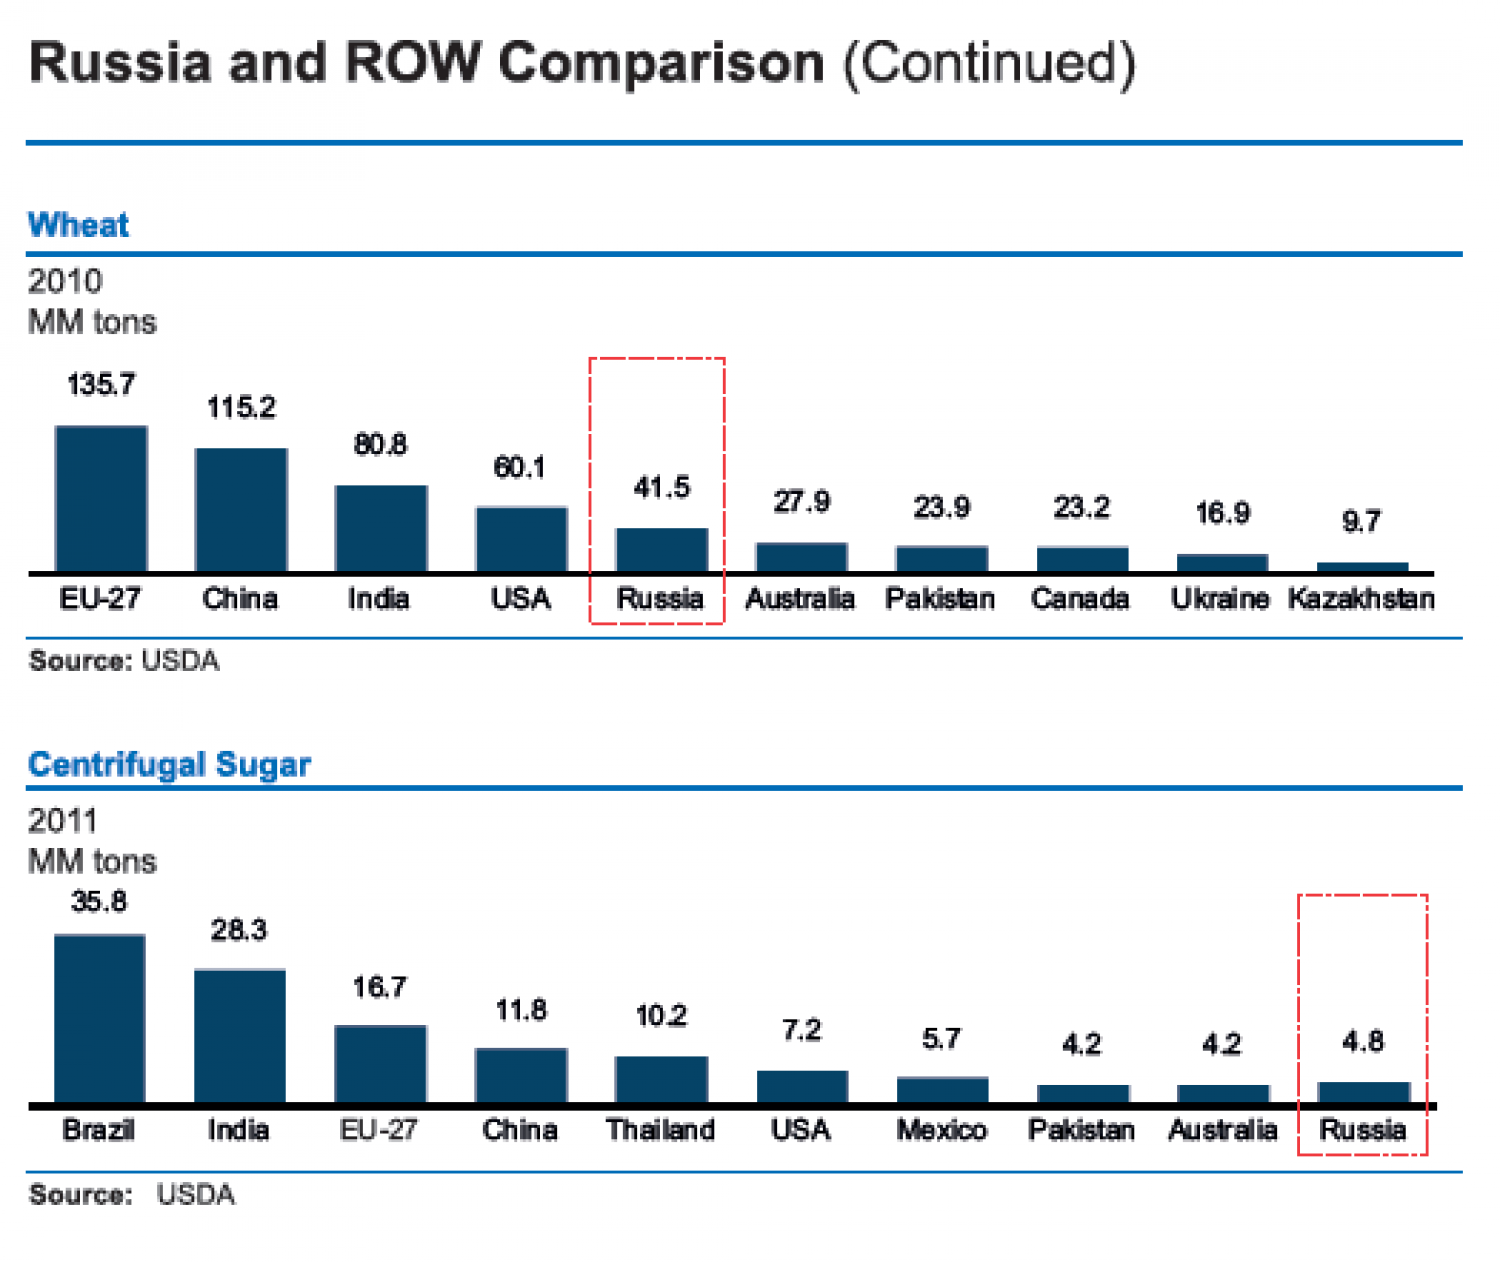 Russian Federation V/s World : Wheat production and Centrifugal Sugar Infographic